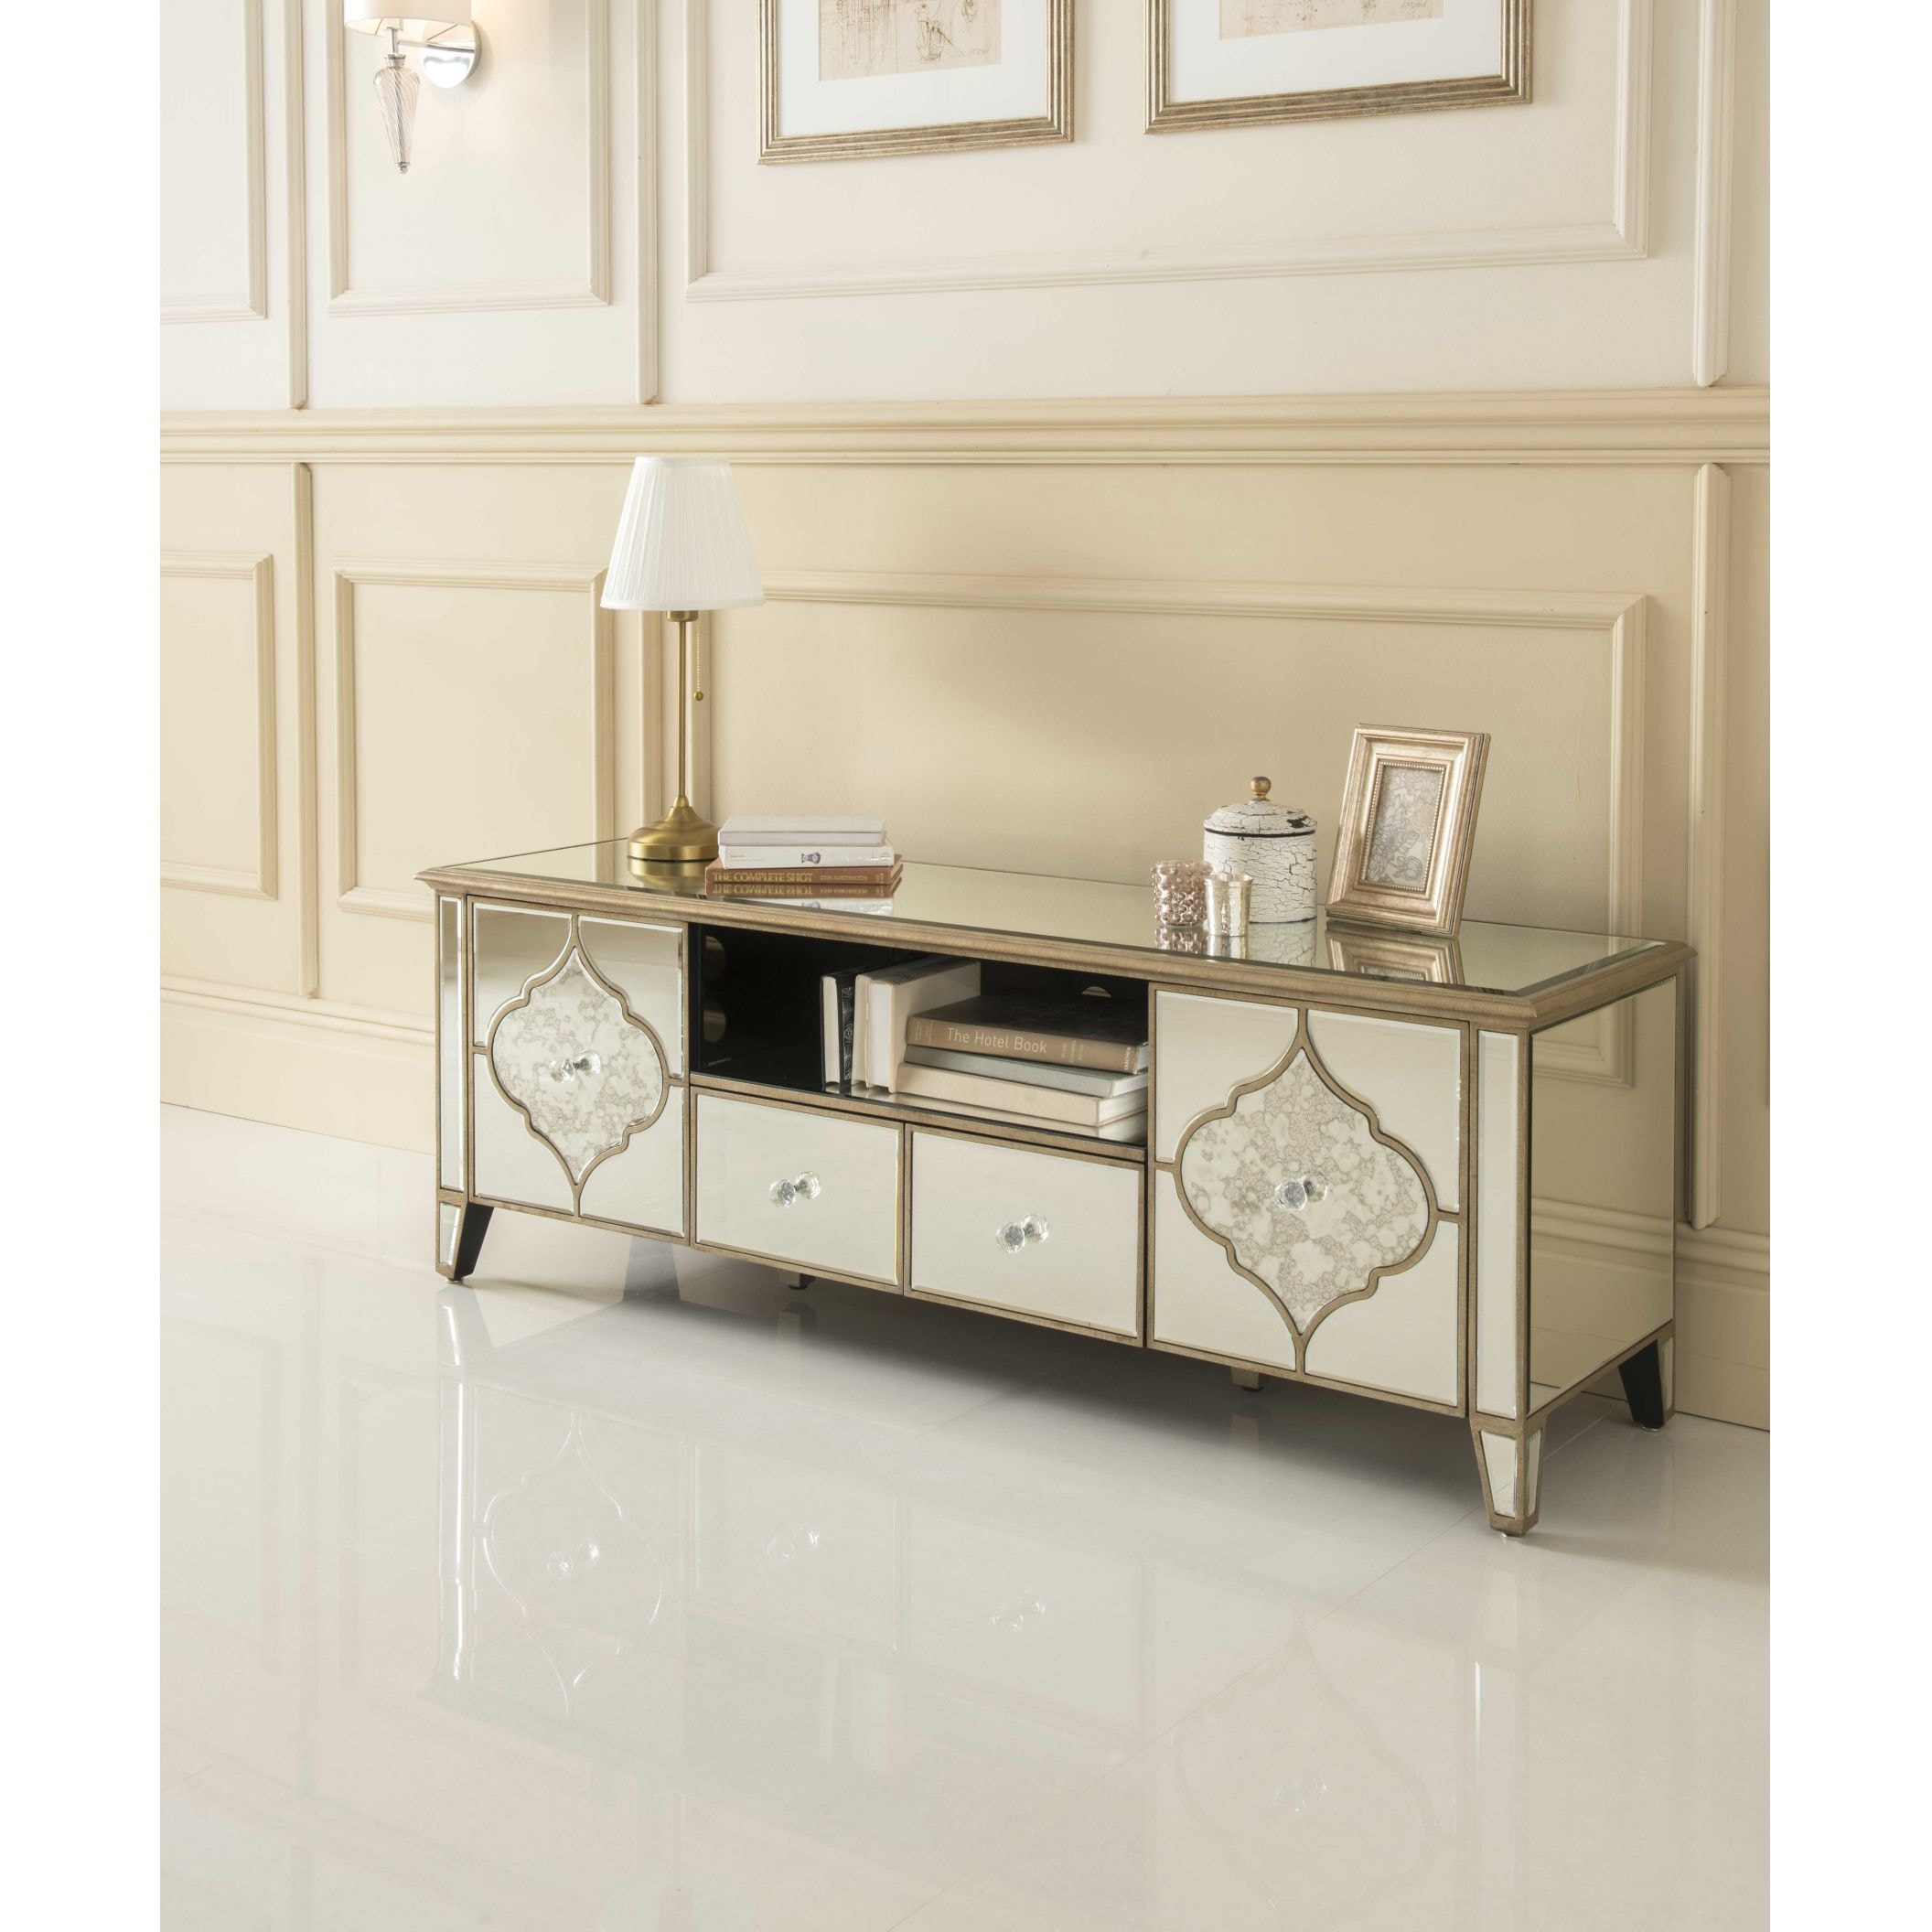 Mirrored Glass Kitchen Cabinets: Sassari Mirrored TV Cabinet